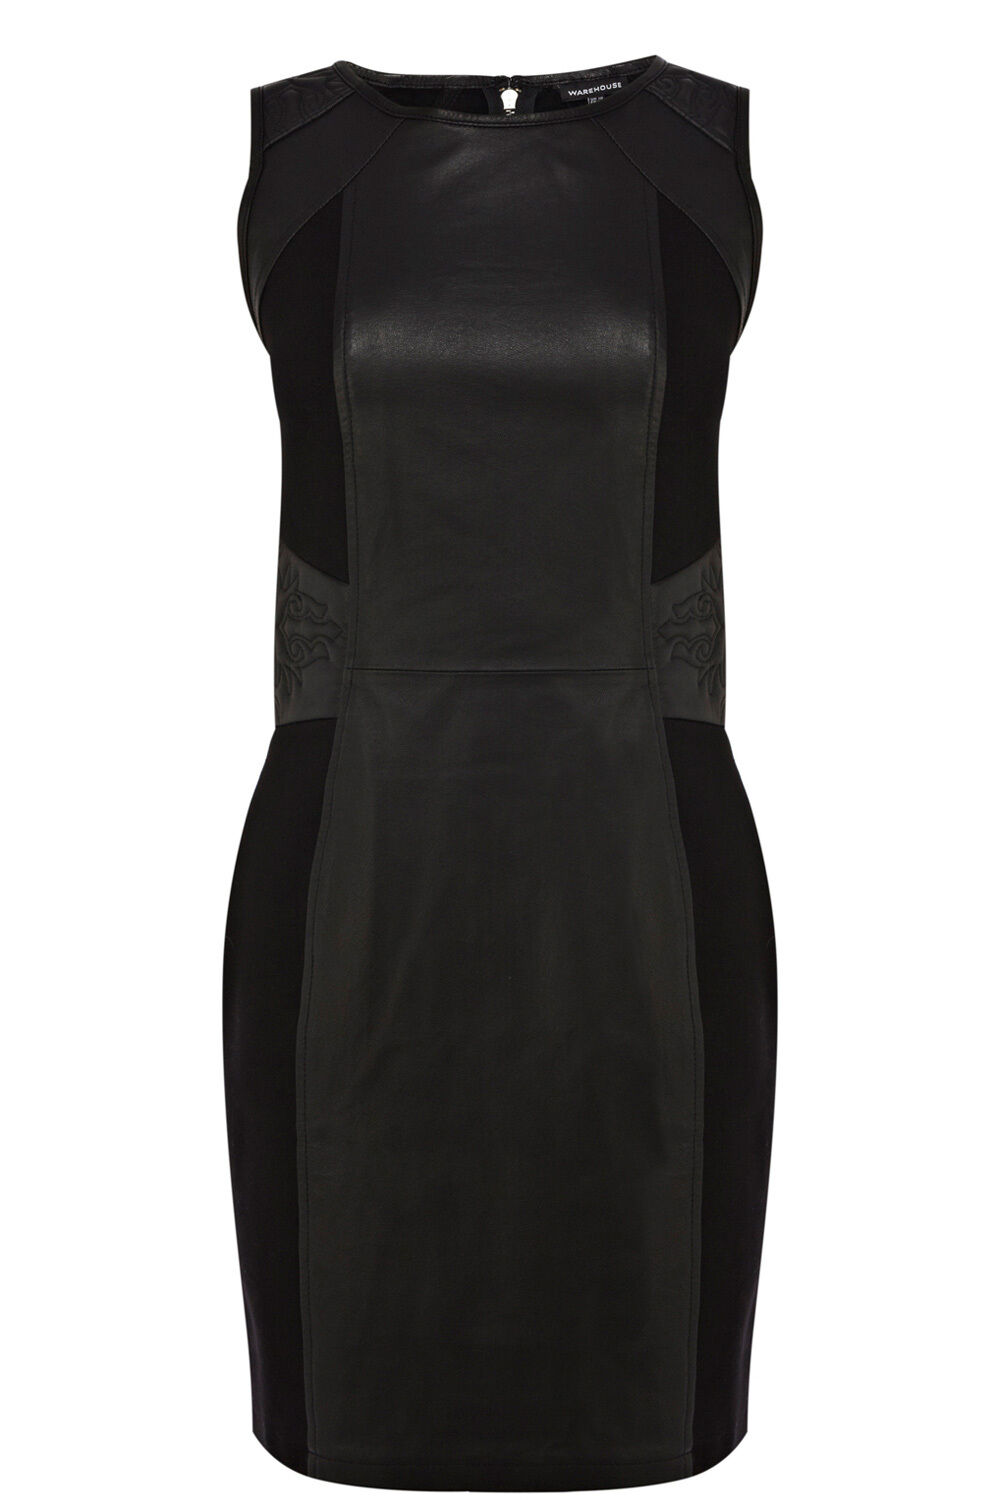 WAREHOUSE EMBROIDERED DETAIL LEATHER DRESS 10